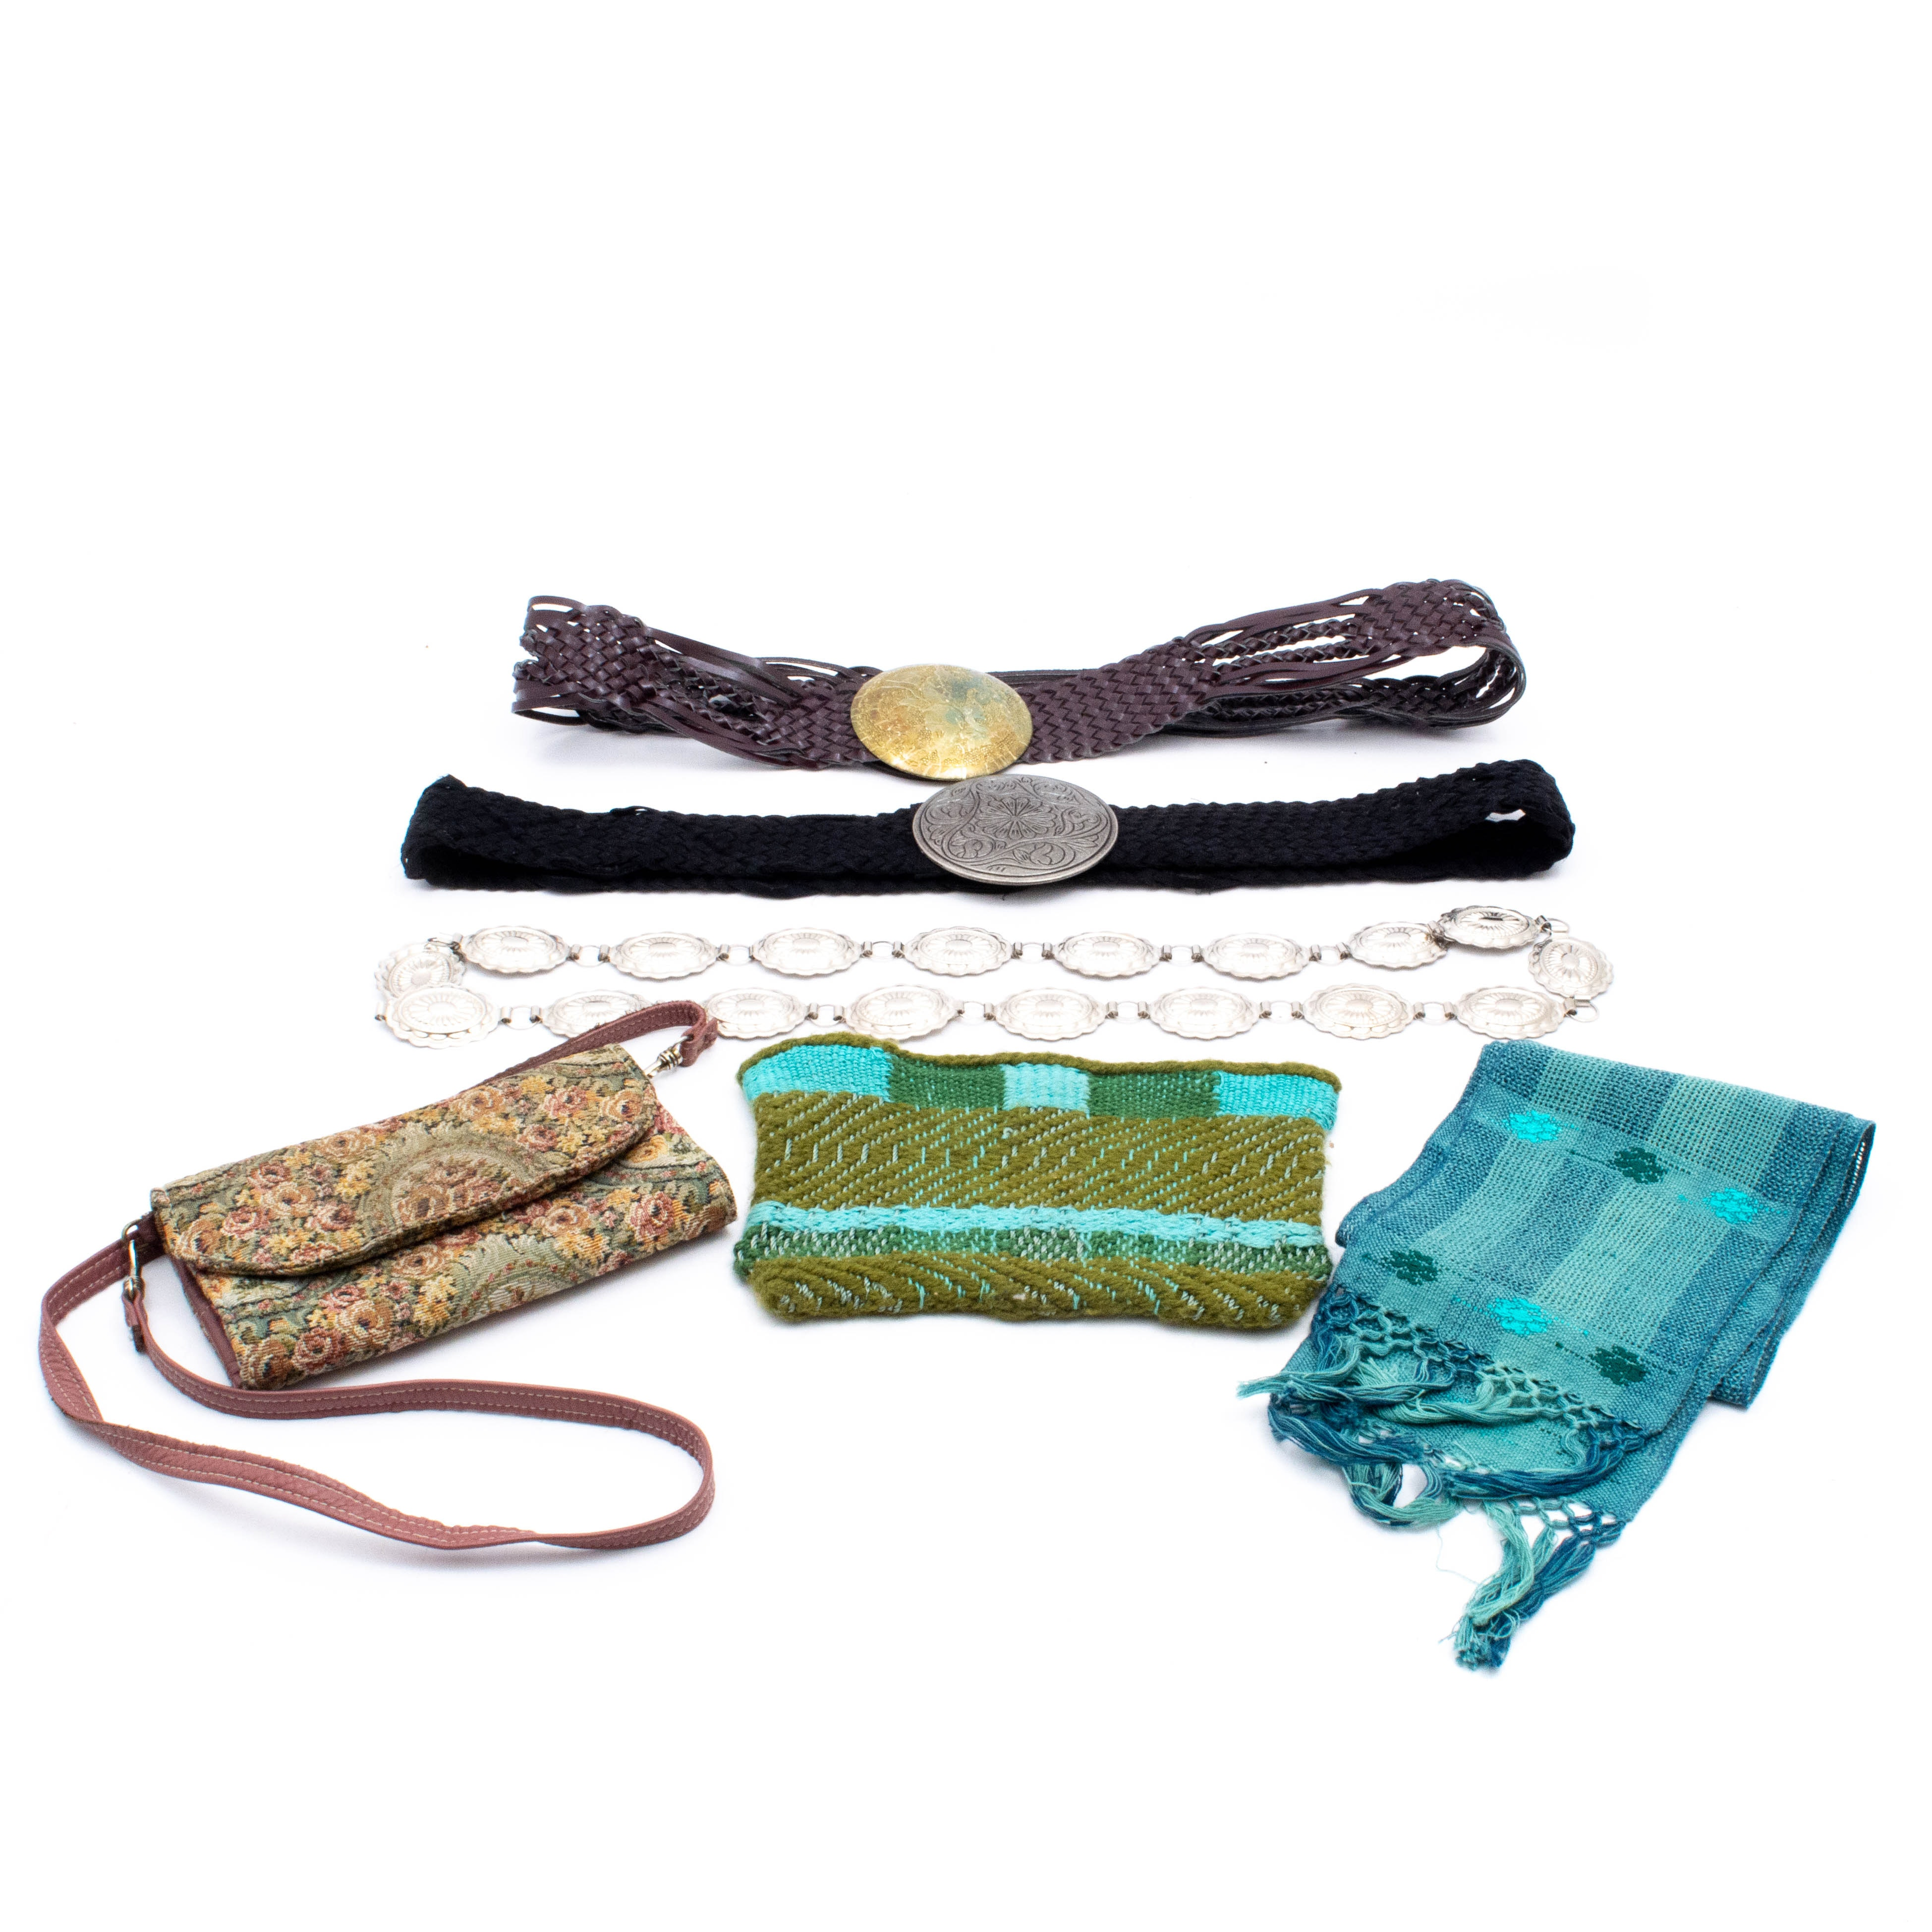 Women's Belts, Woven Scarf, Tapestry Crossbody Bag and Zippered Pouch